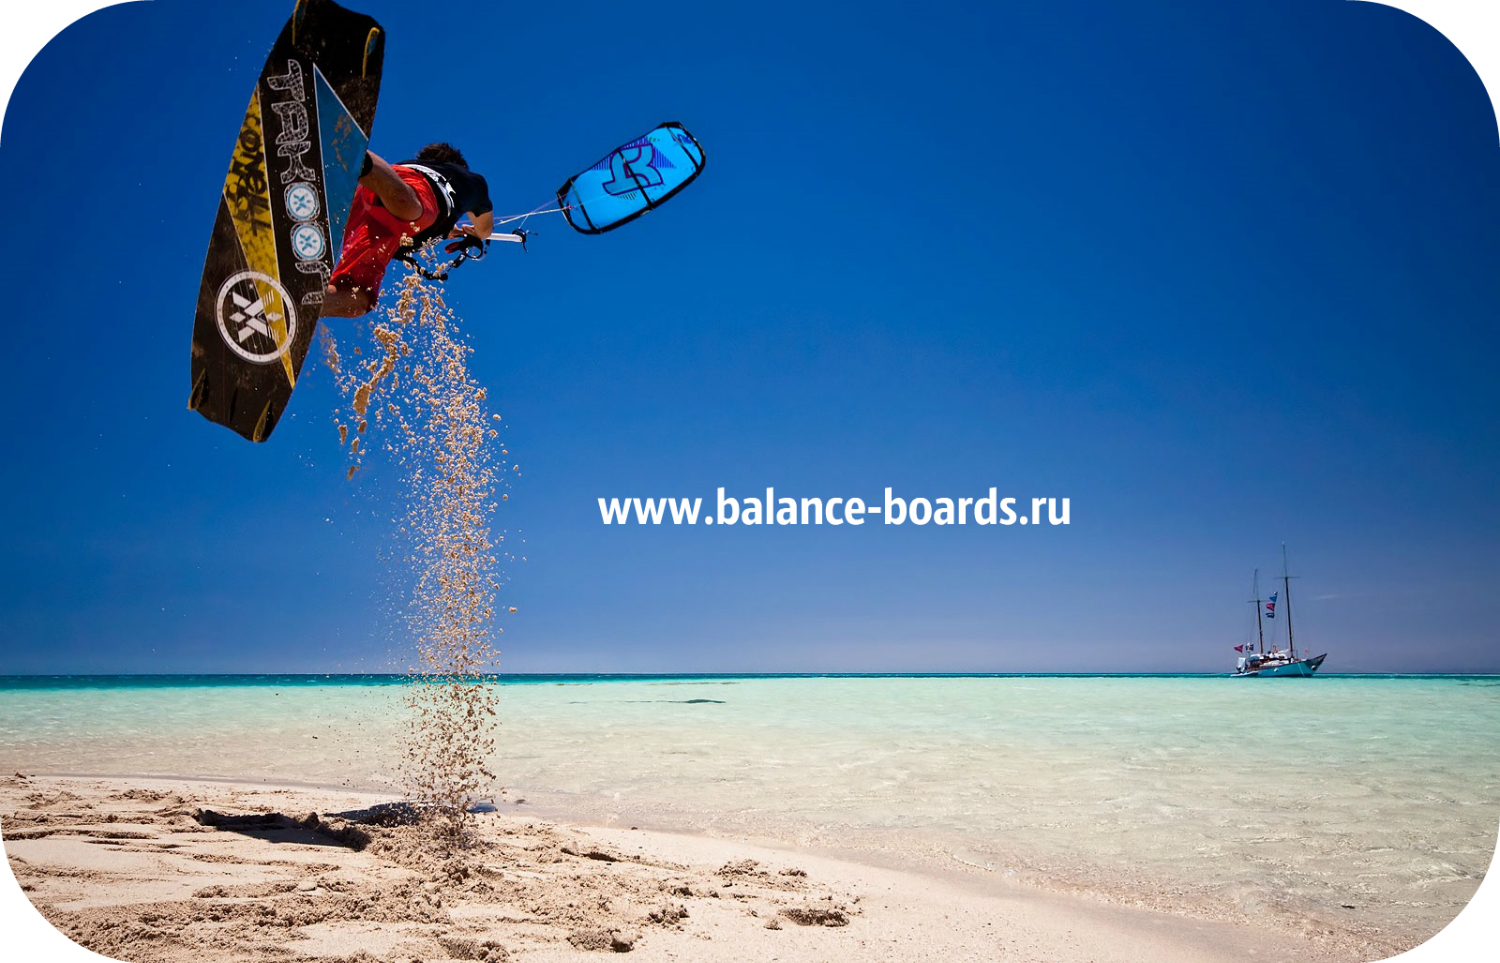 http://balance-boards.ru/images/upload/Многогранный%20кайтинг.jpg